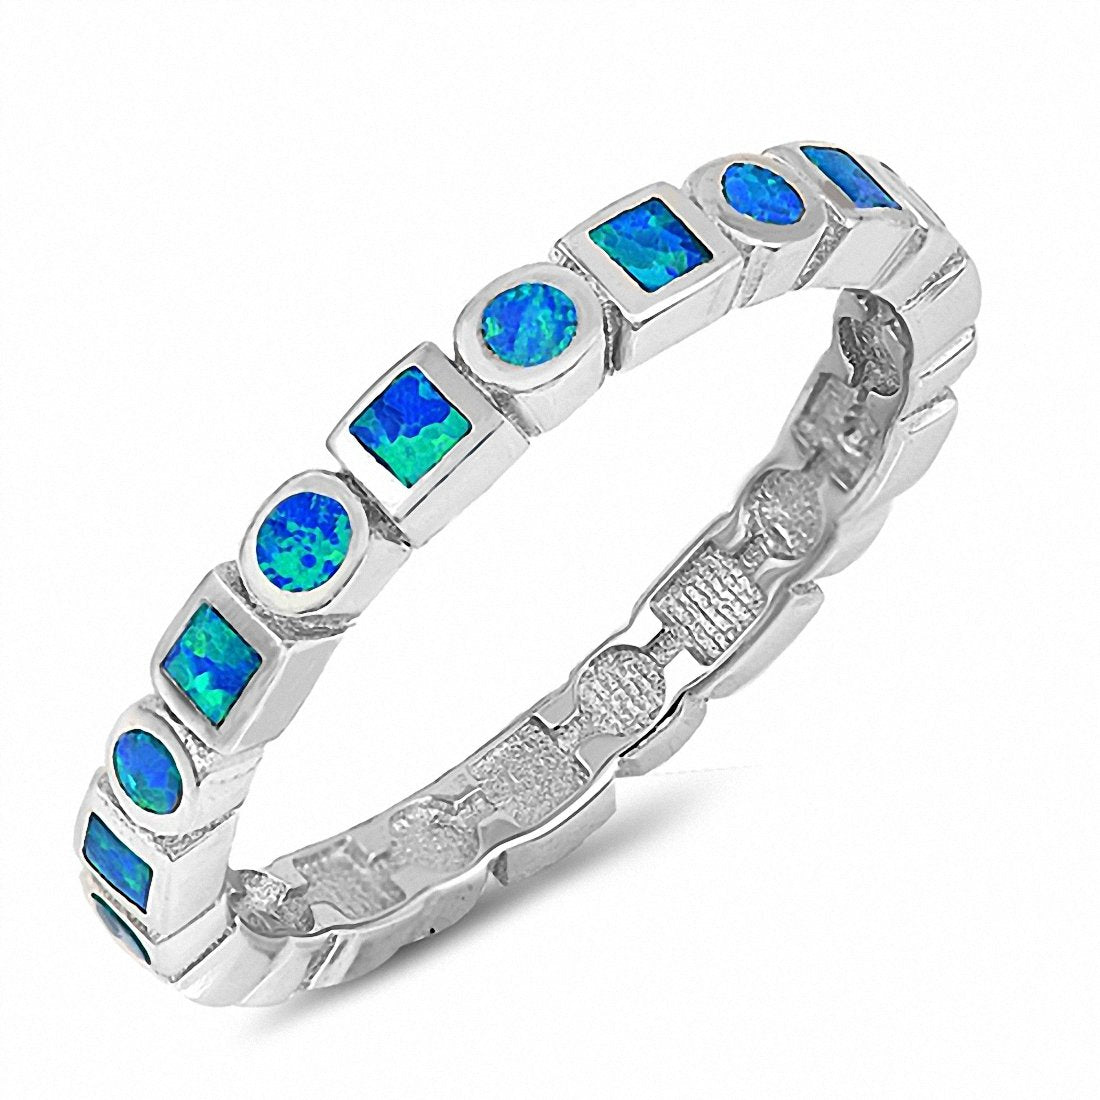 3mm Round Square Created Opal Band 925 Sterling Silver Choose Color